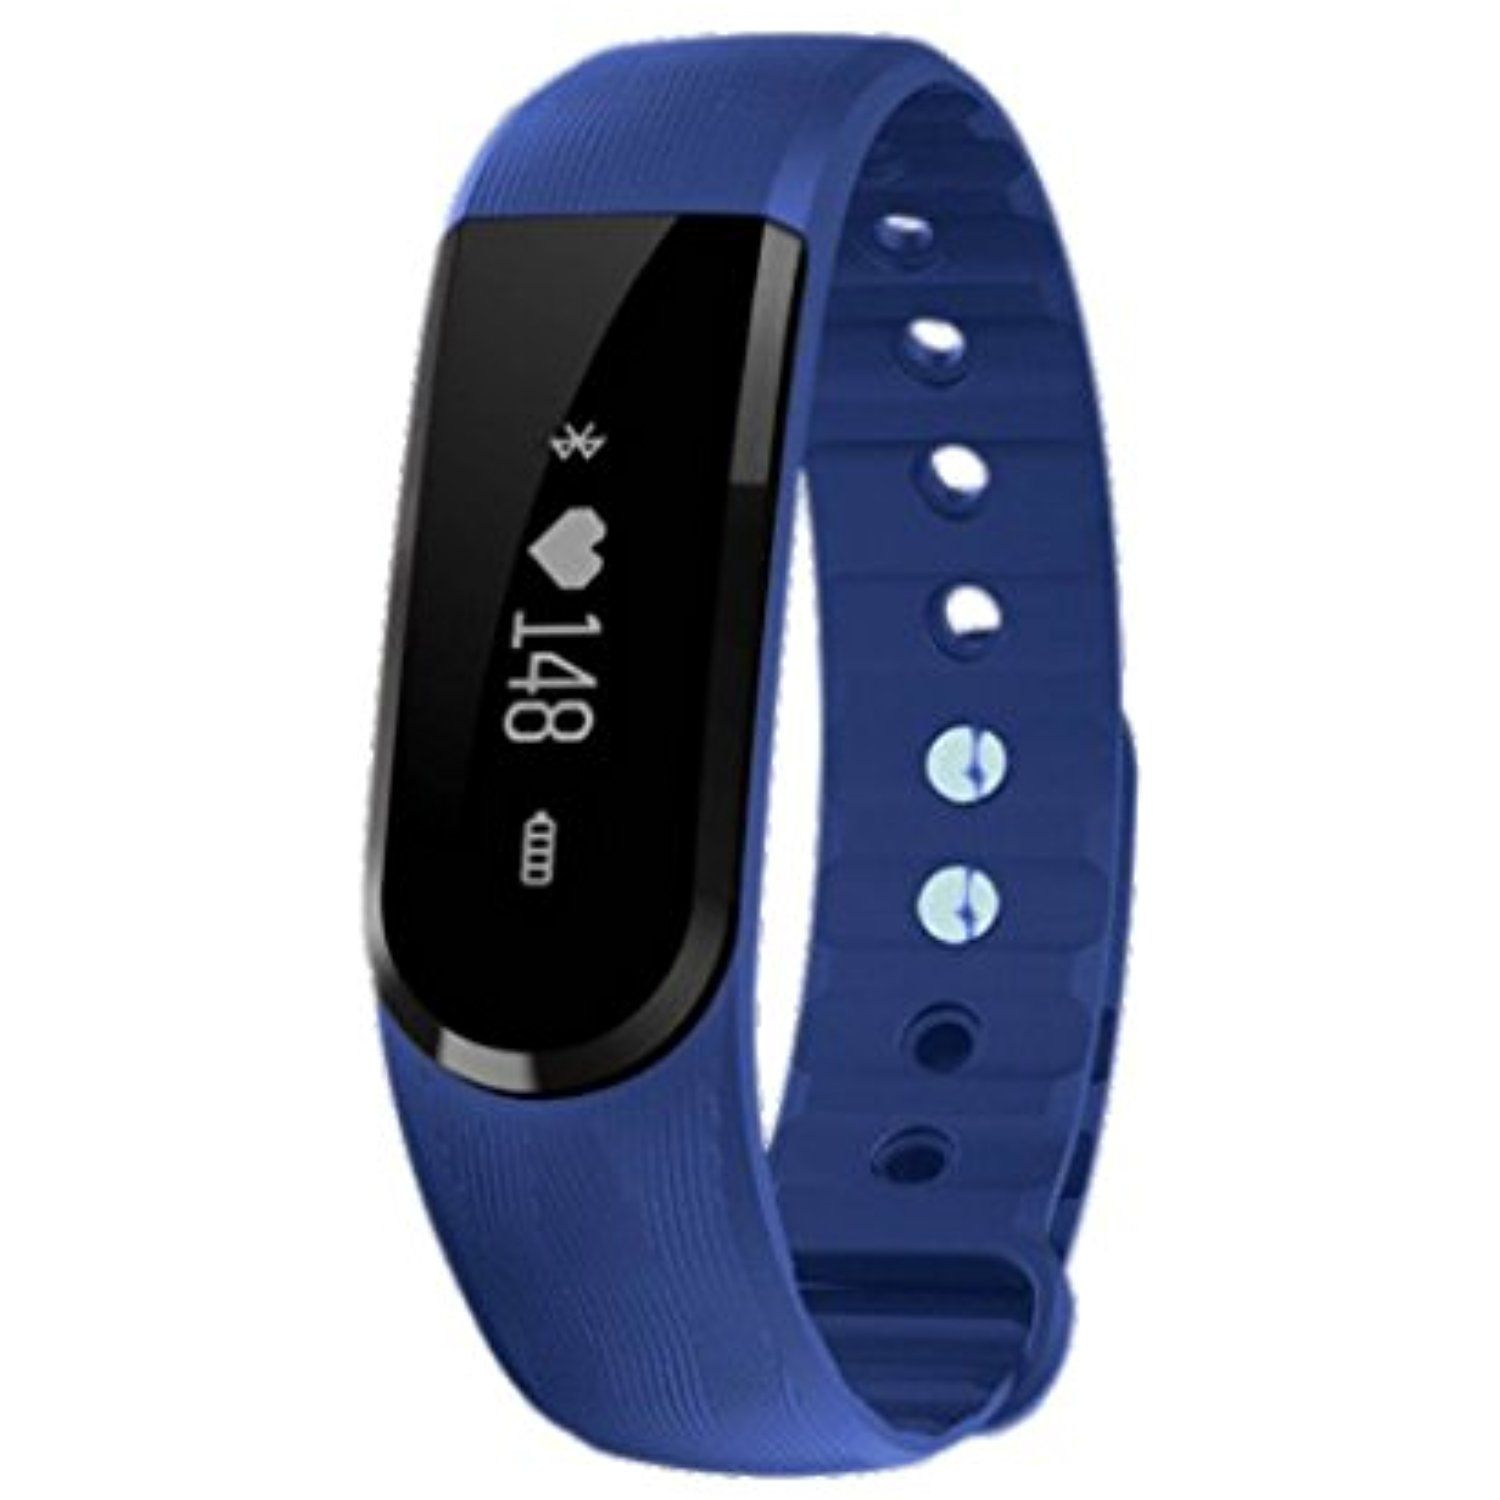 Duseco Heart Rate Smart Fitness Band Activity Tracker